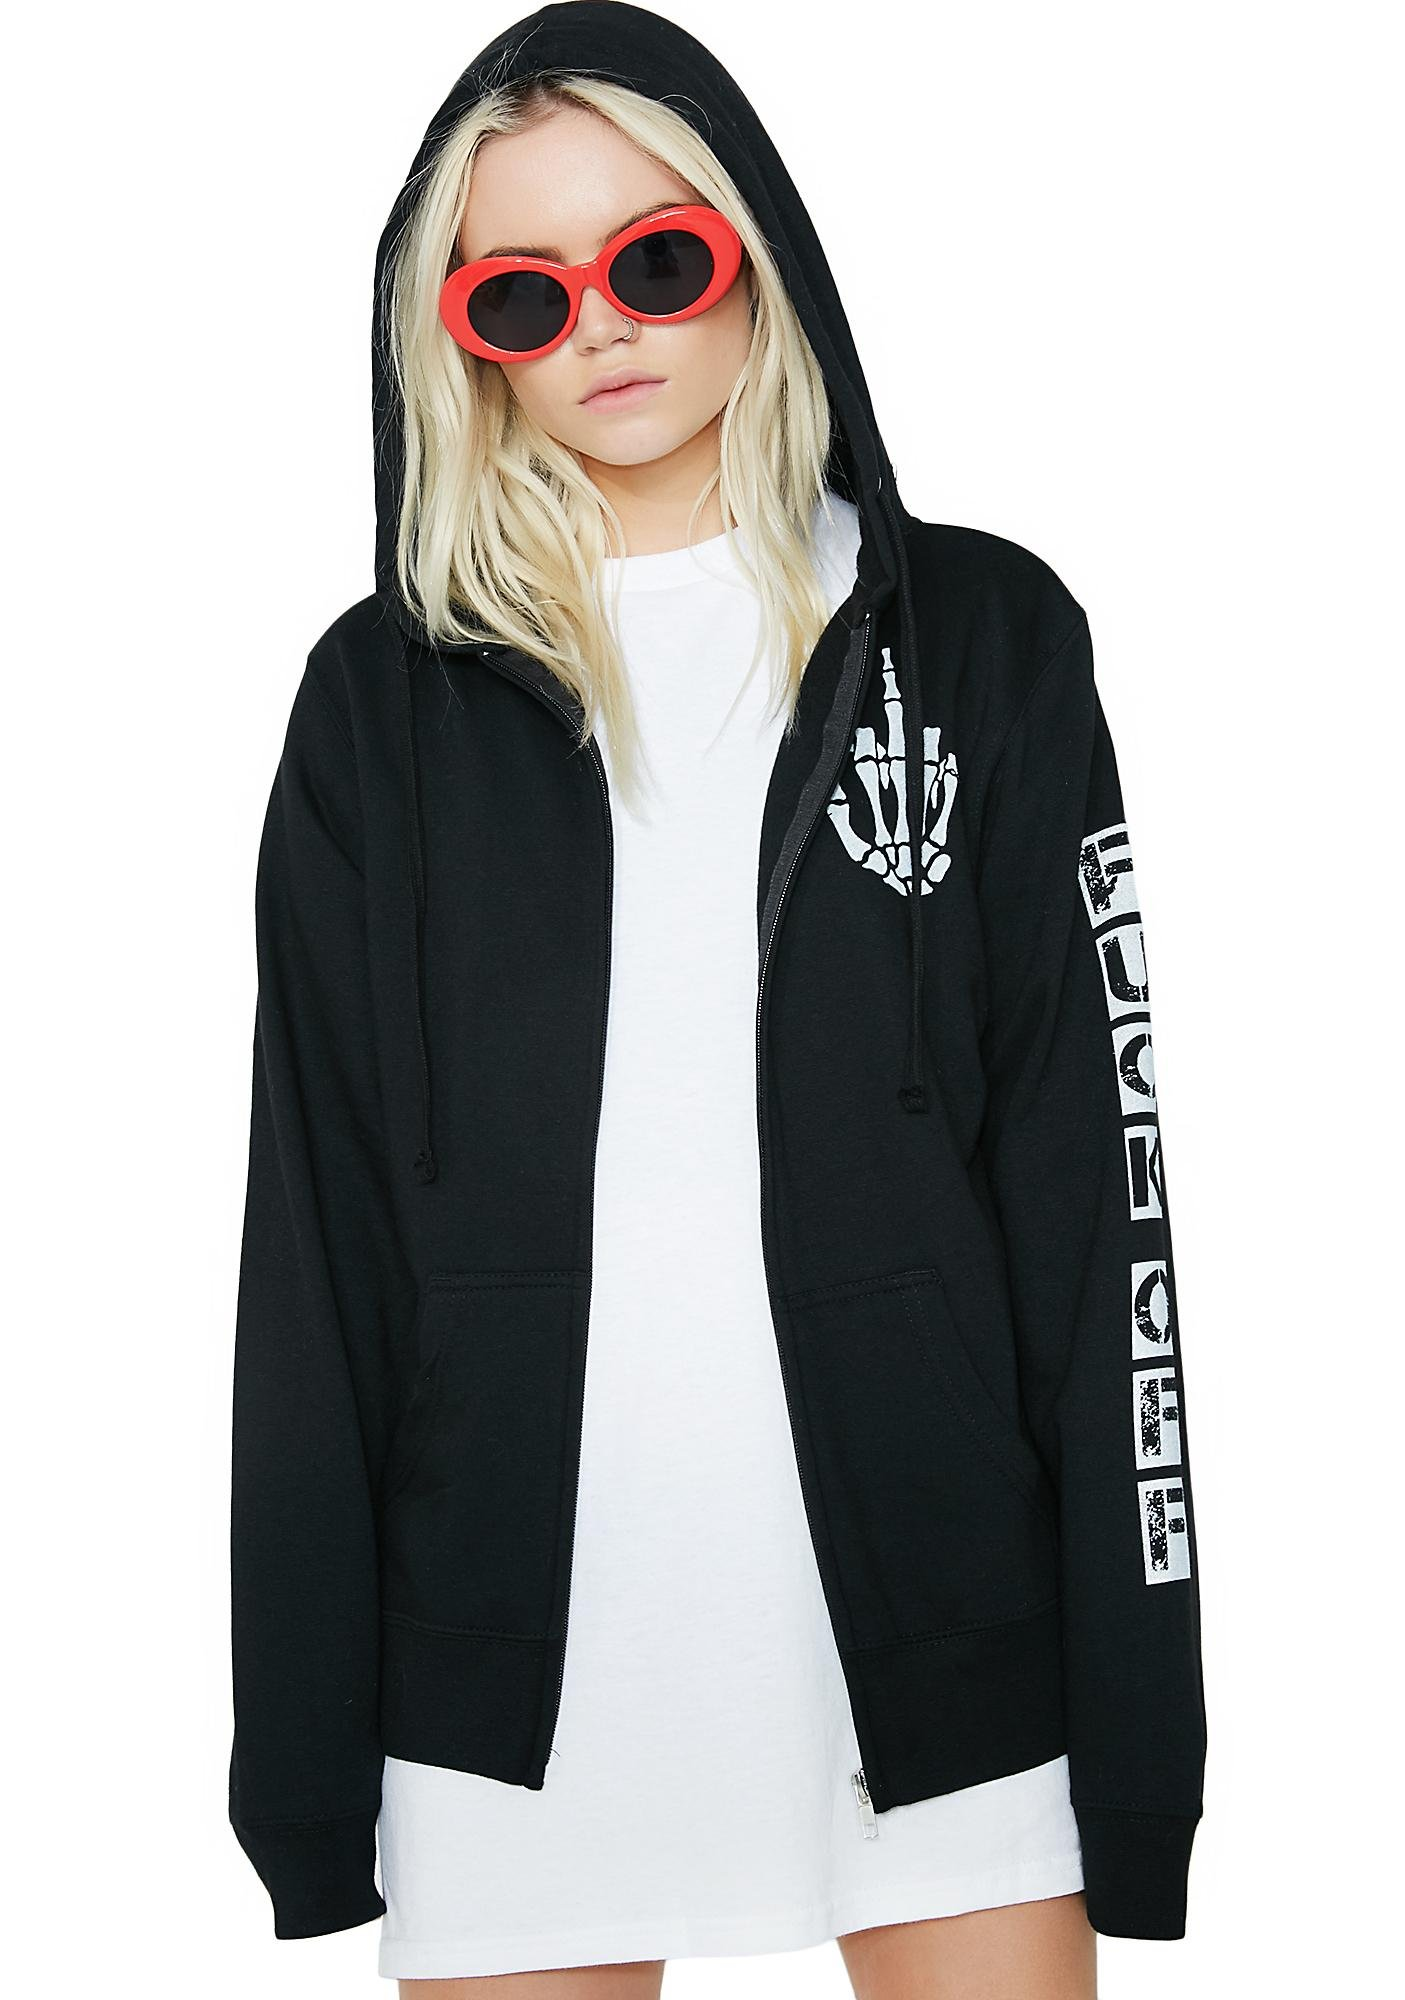 Middle Finger Up Hoodie